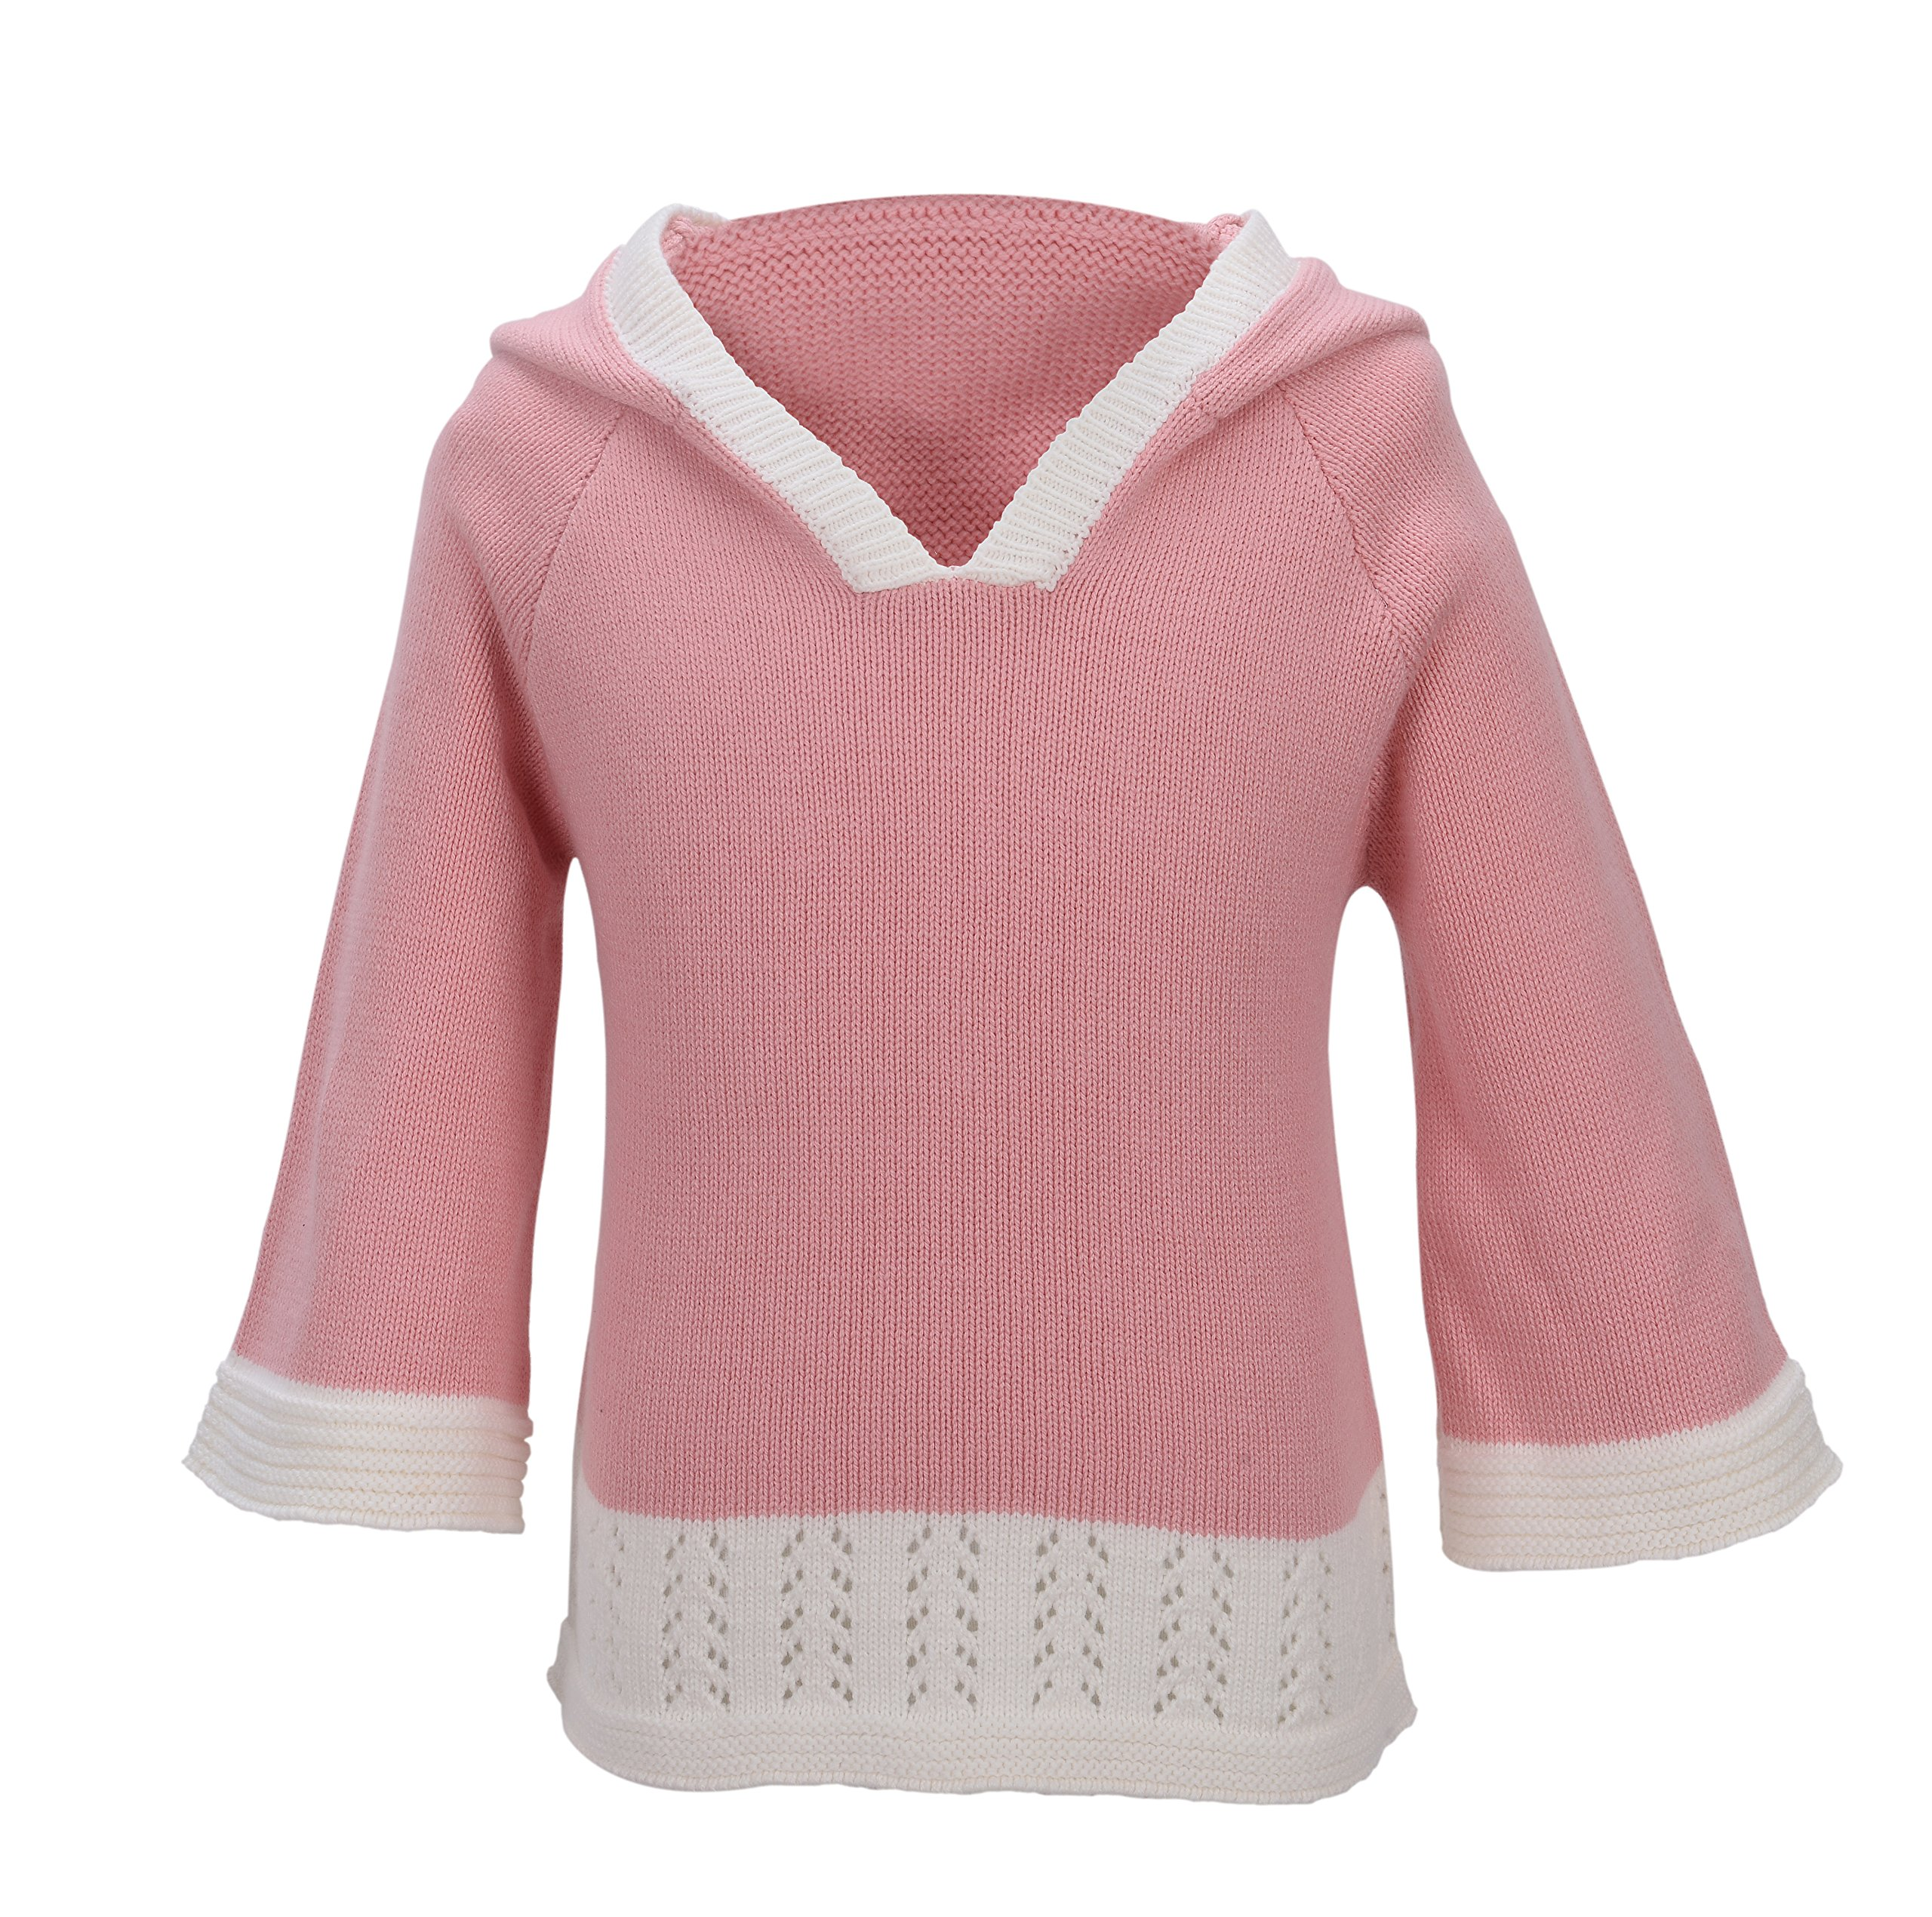 PuTian Kids- Baby Girl Long Bell Sleeve Sweater with a Hood-Pink-[6-7Years]